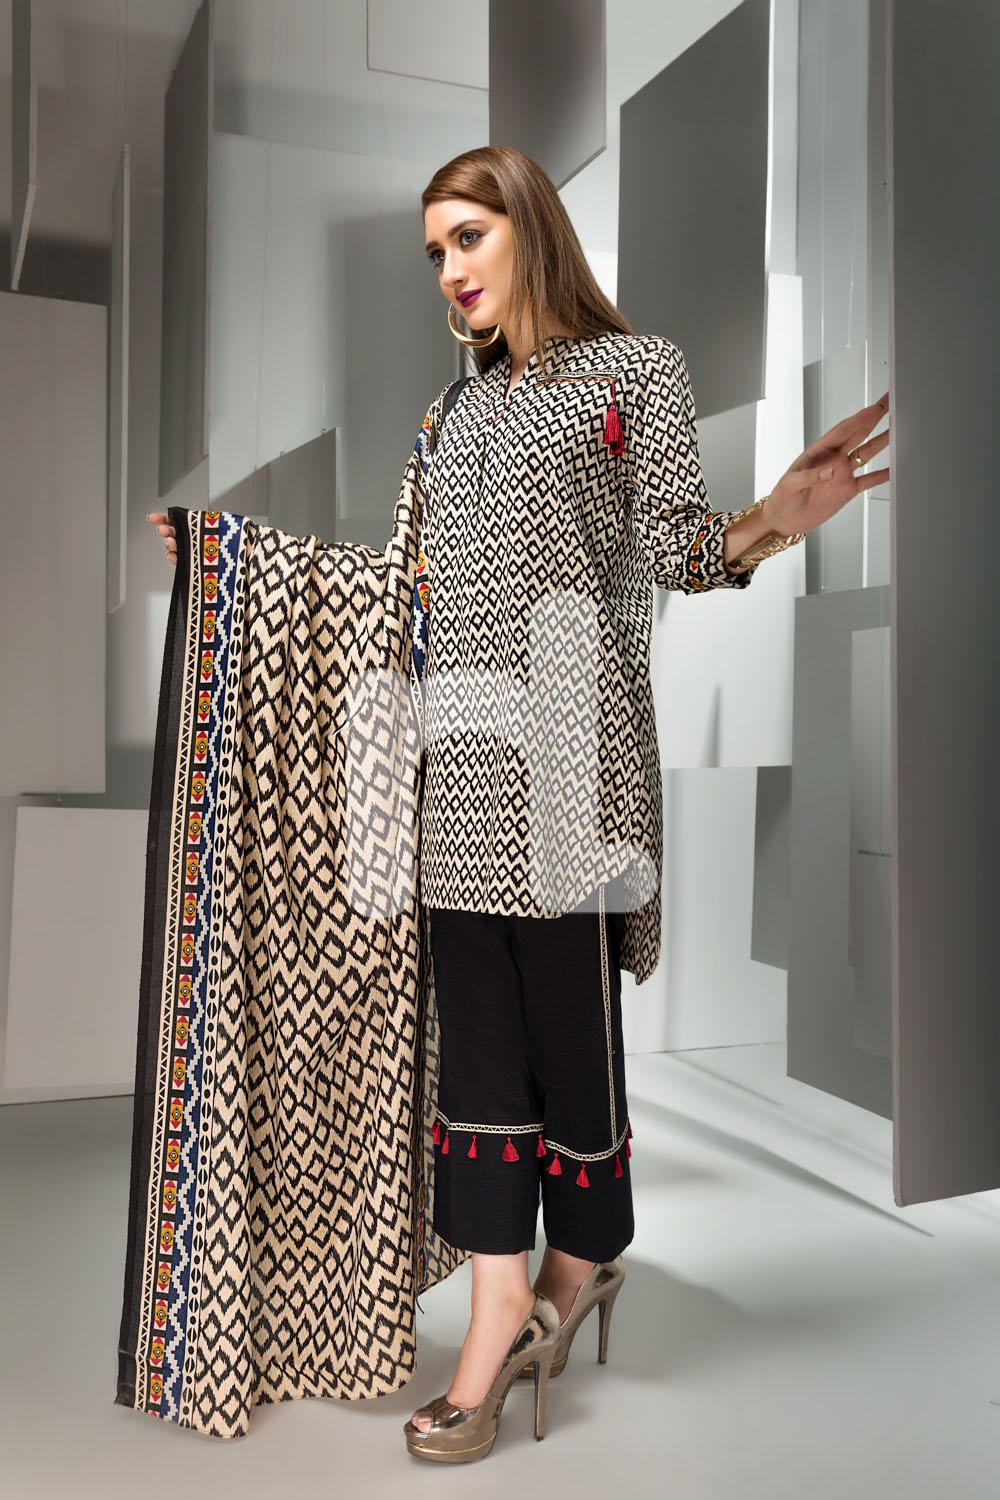 62633b1bff Enjoy your winter season with Nishat linen and celebrate happiness. Follow  us for more collections and fashion updates. Keep on smiling!